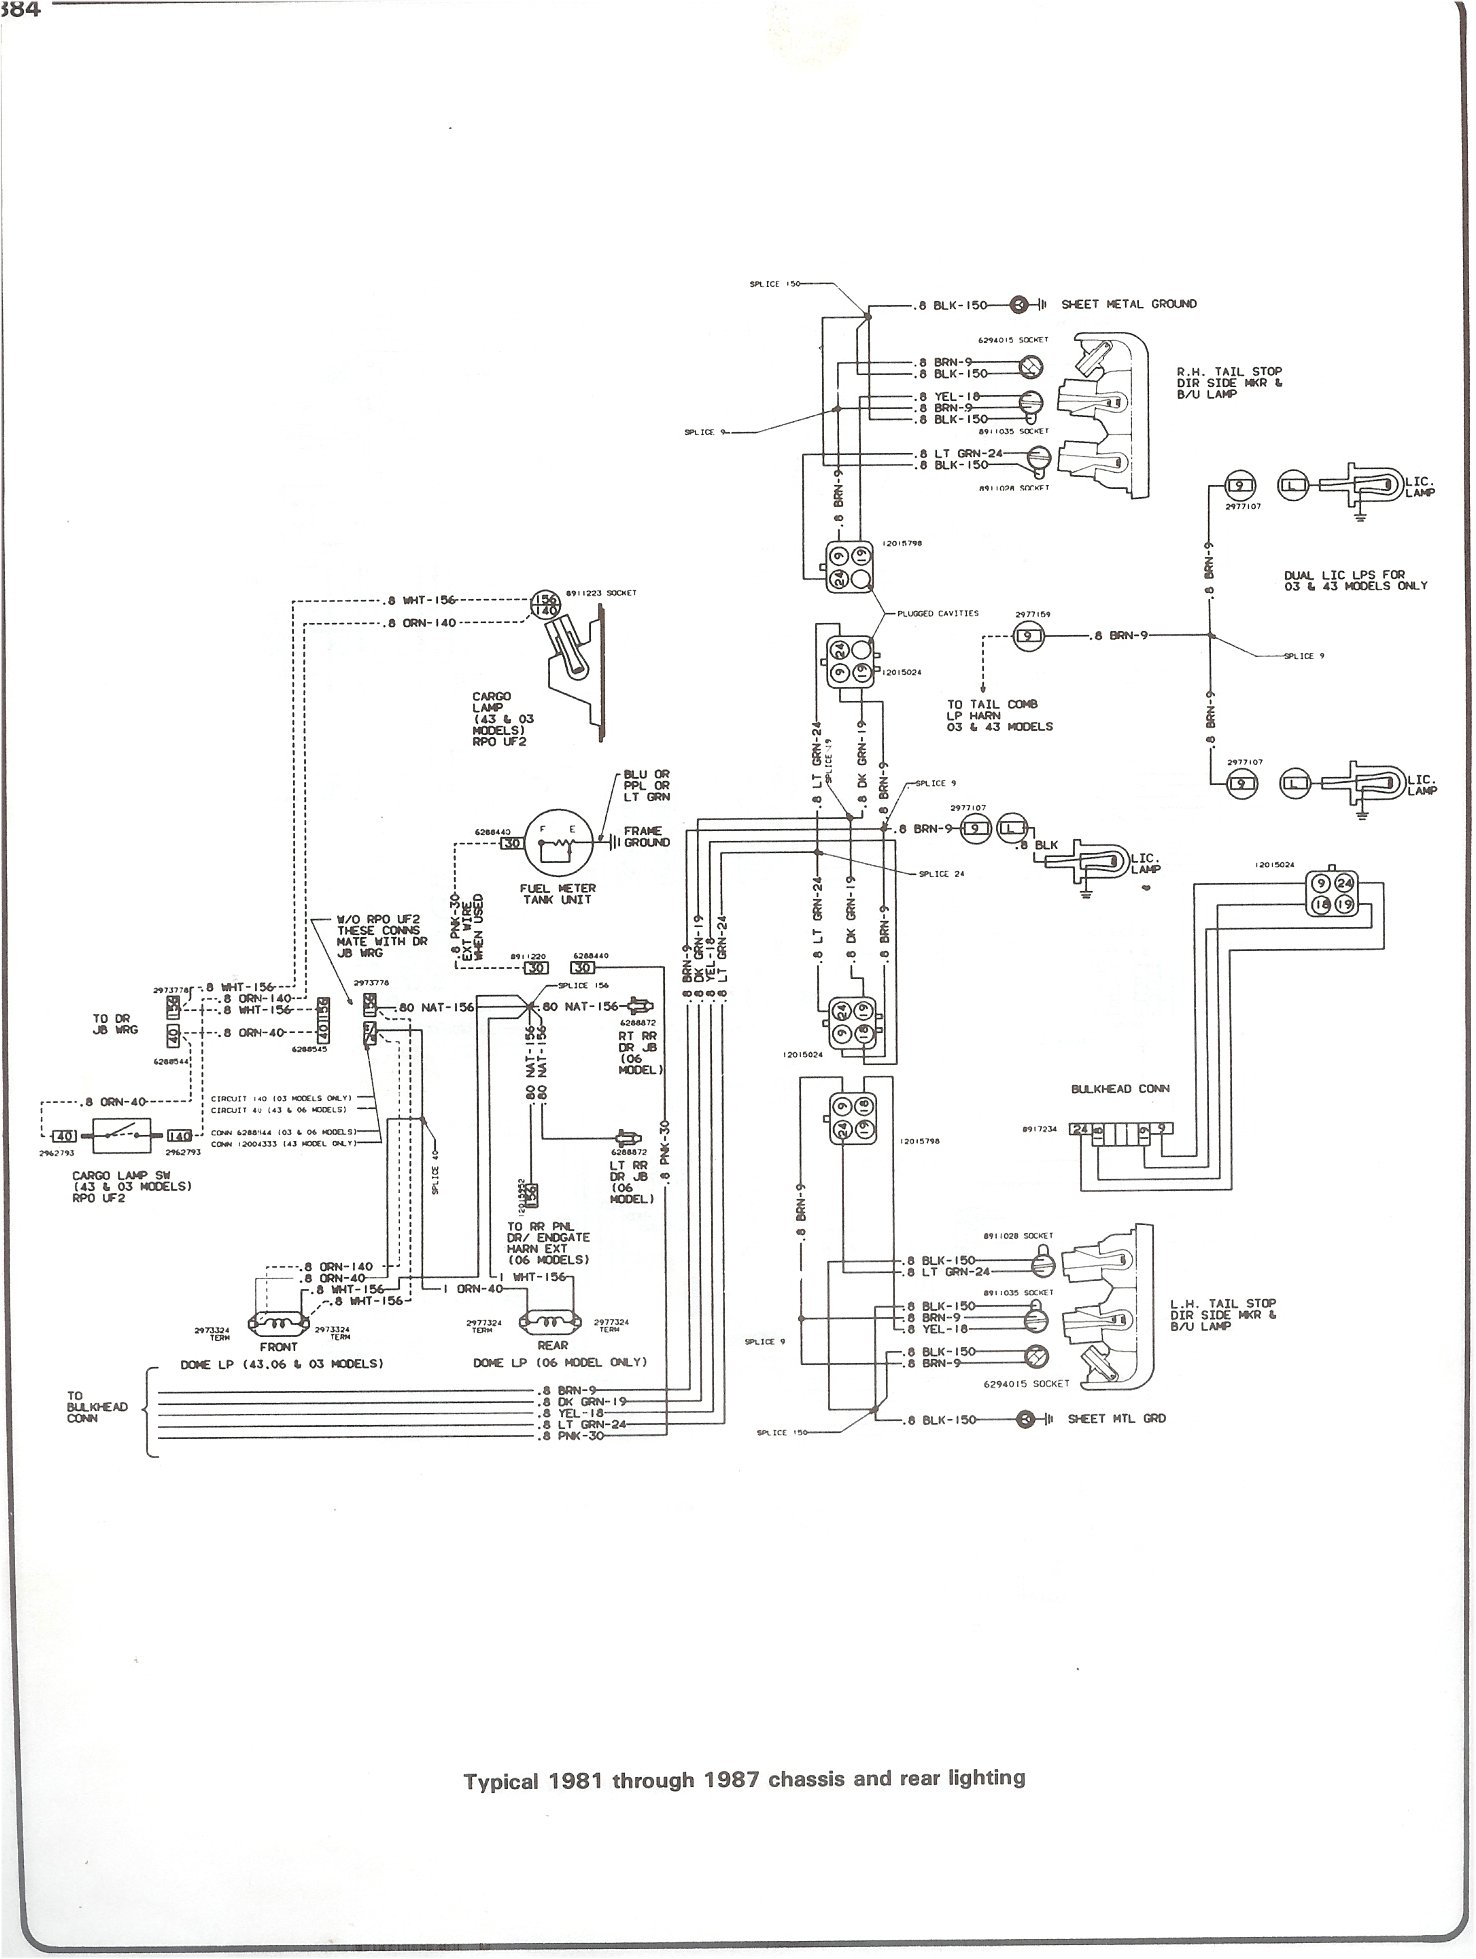 81 87_chass_rr_light complete 73 87 wiring diagrams 1996 chevy truck wiring diagram at gsmx.co